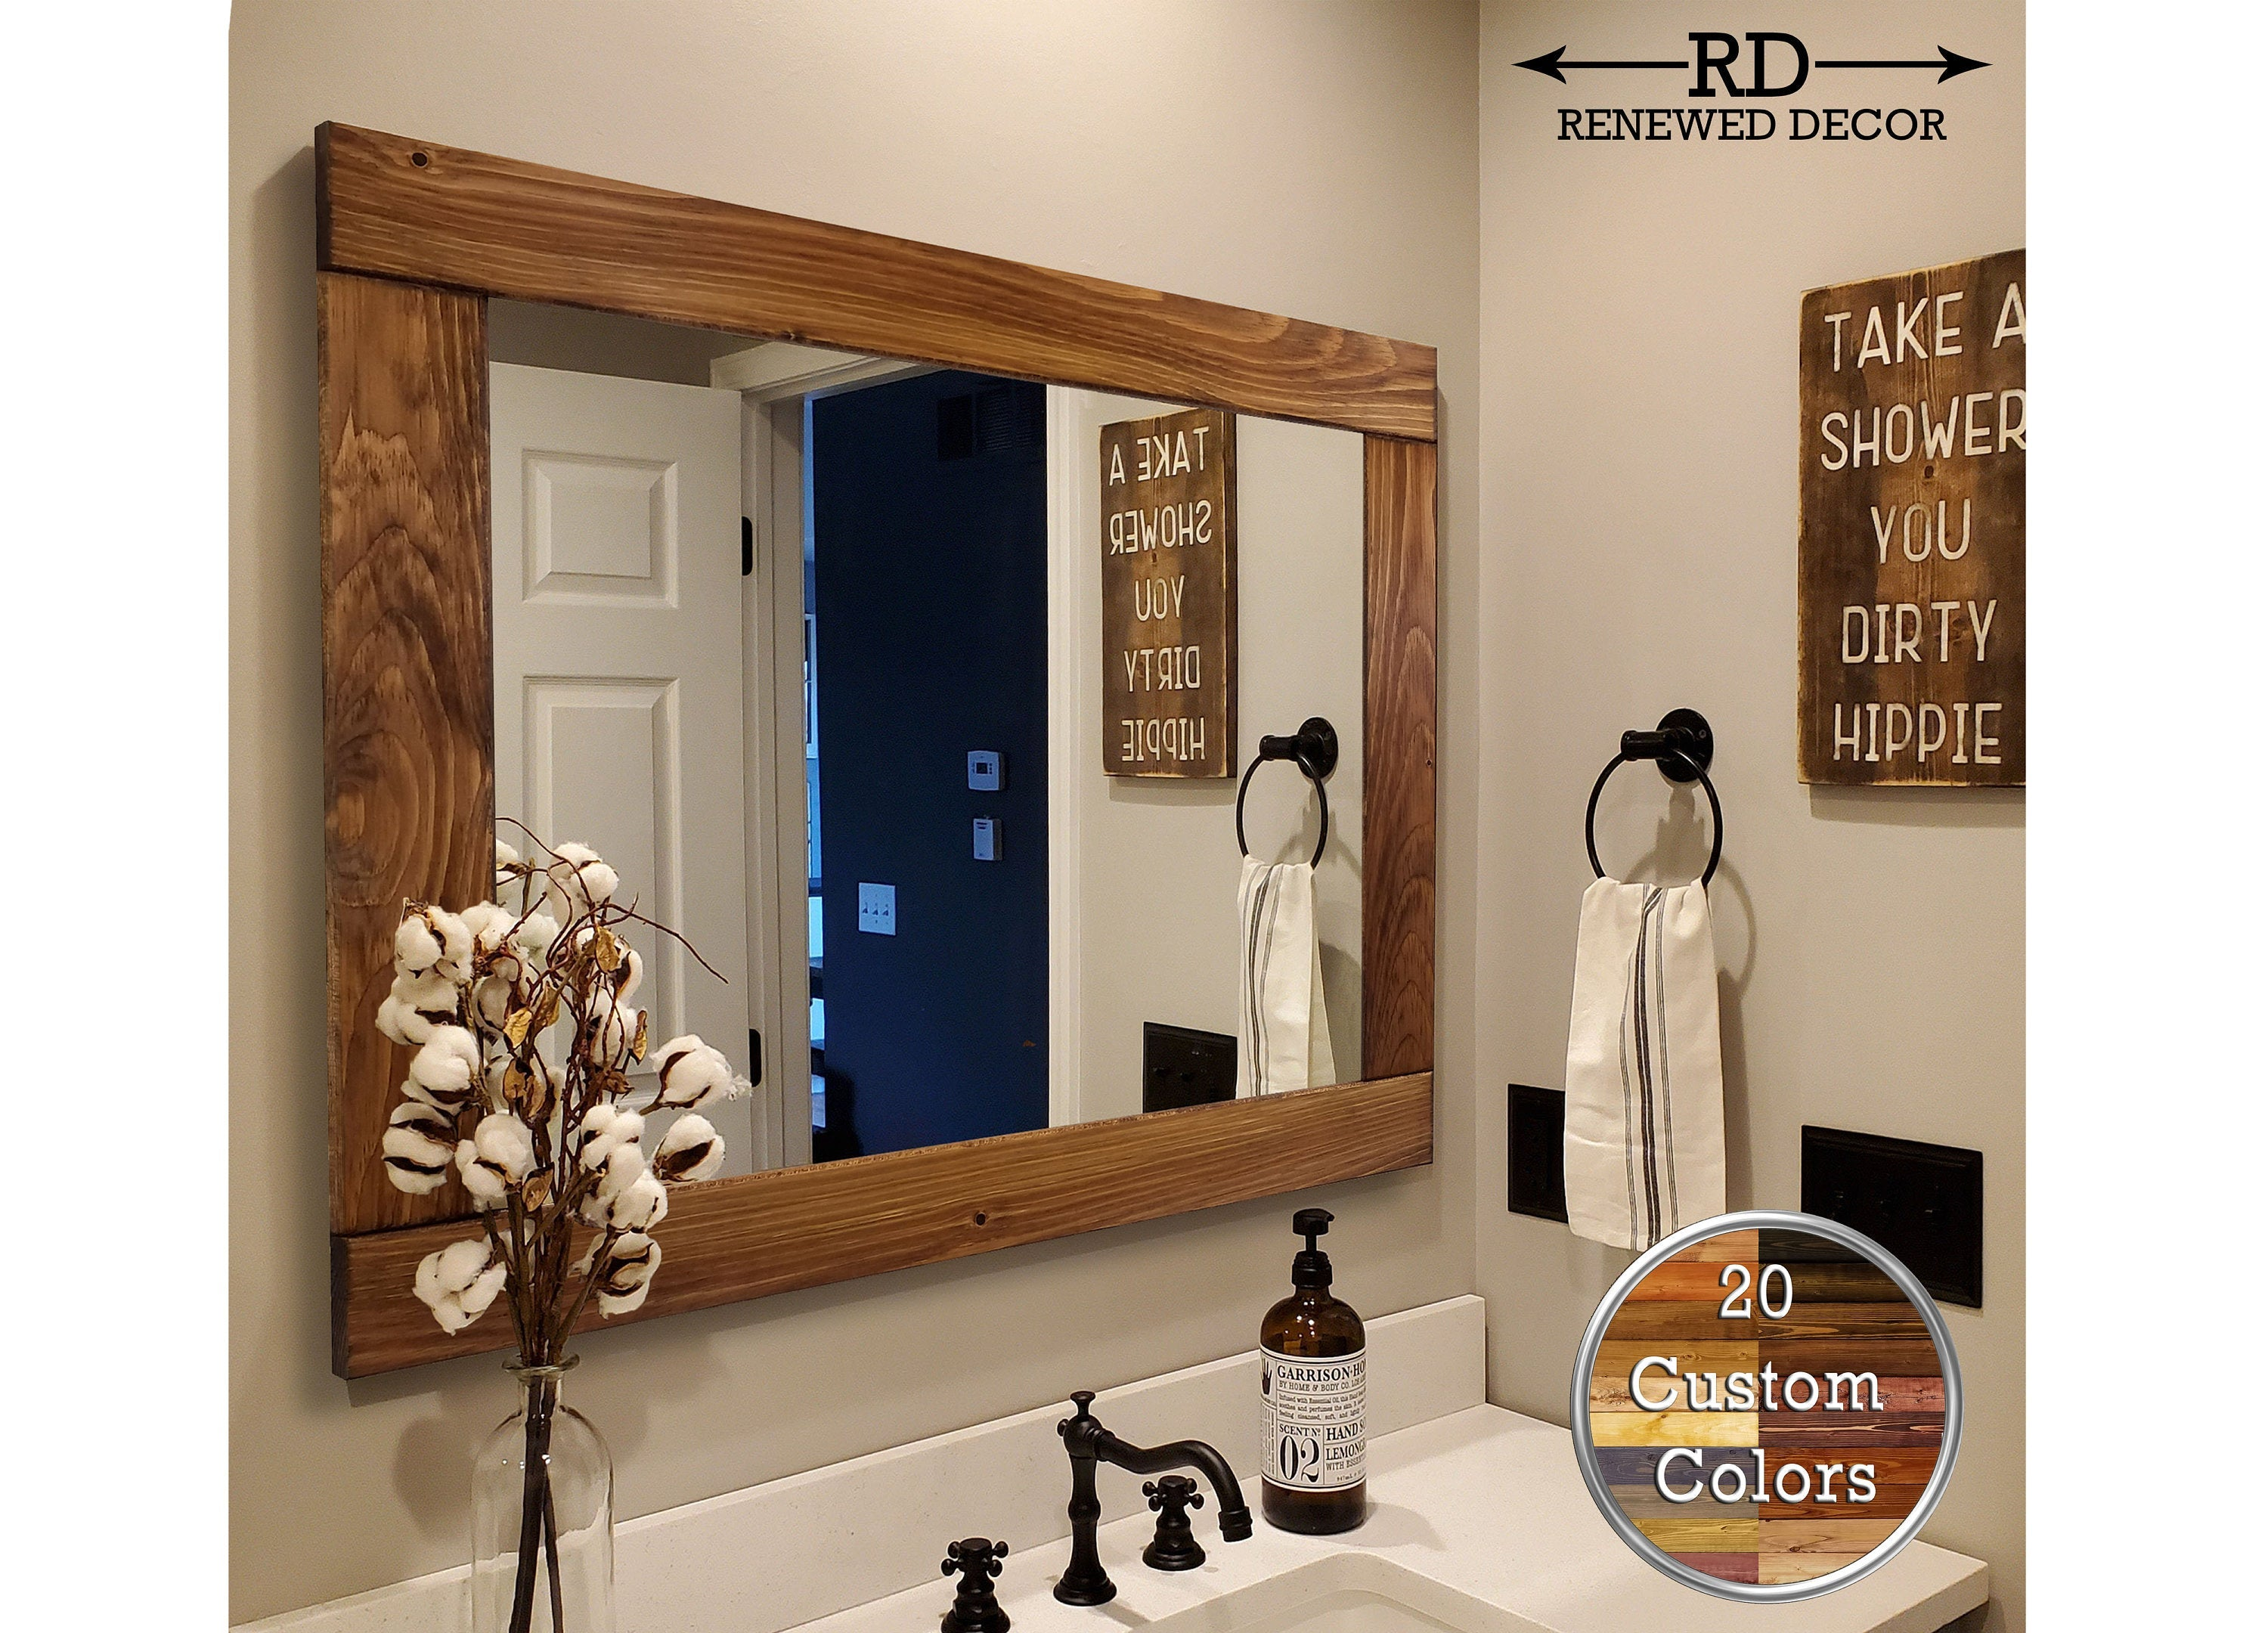 Natural Rustic Wood Framed Mirror 20 Stain Colors Renewed Decor Storage